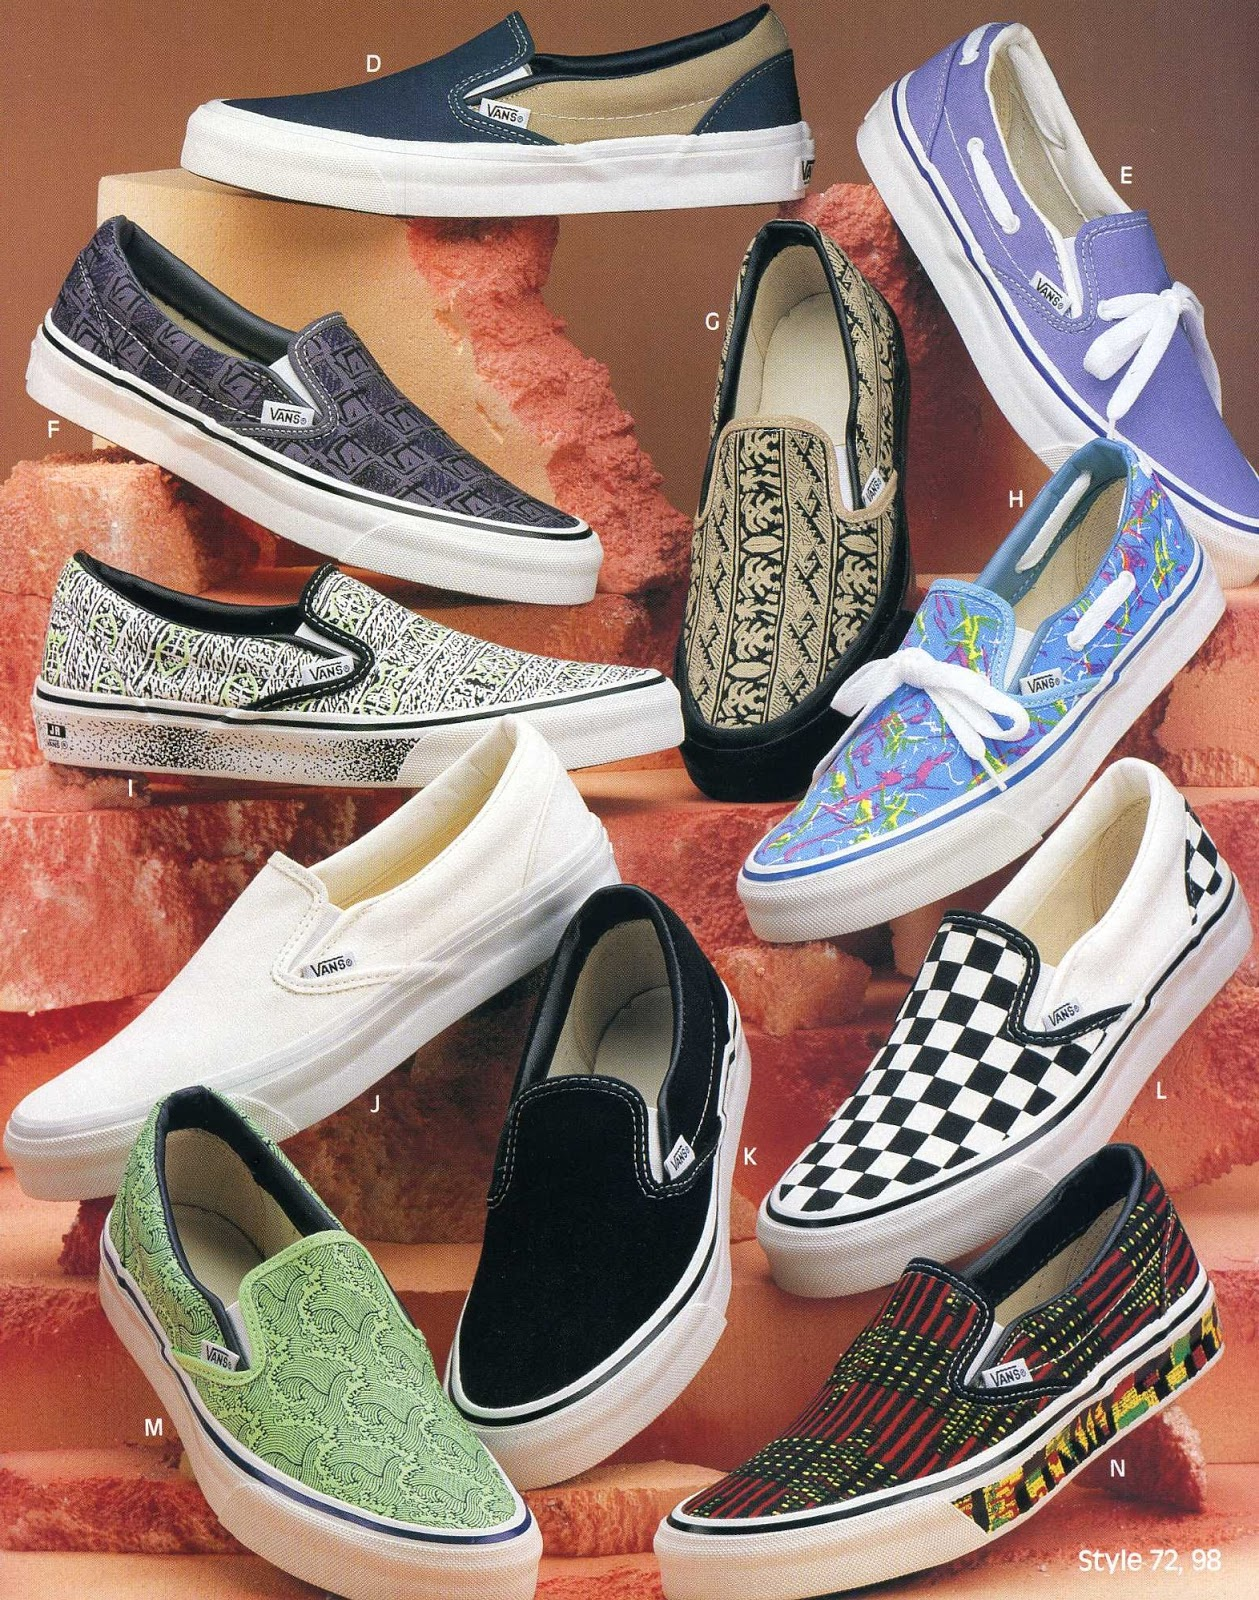 033388011a we forsee a style  98 comeback   if vans embrace the multitude of back  catalogue colorways